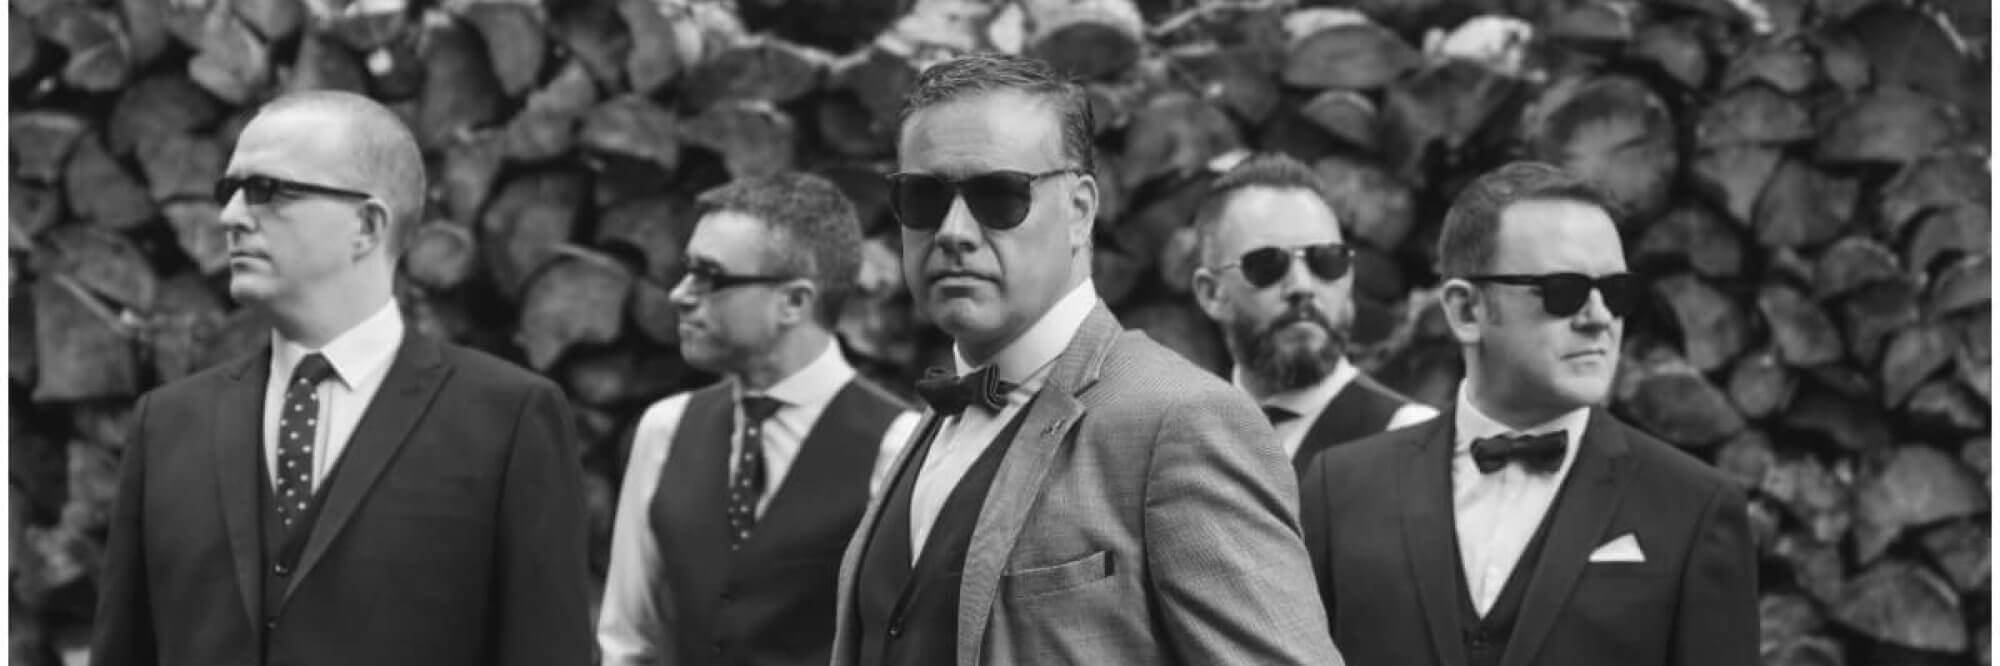 Wedding Bands Ireland | The Jukebox Kings Music